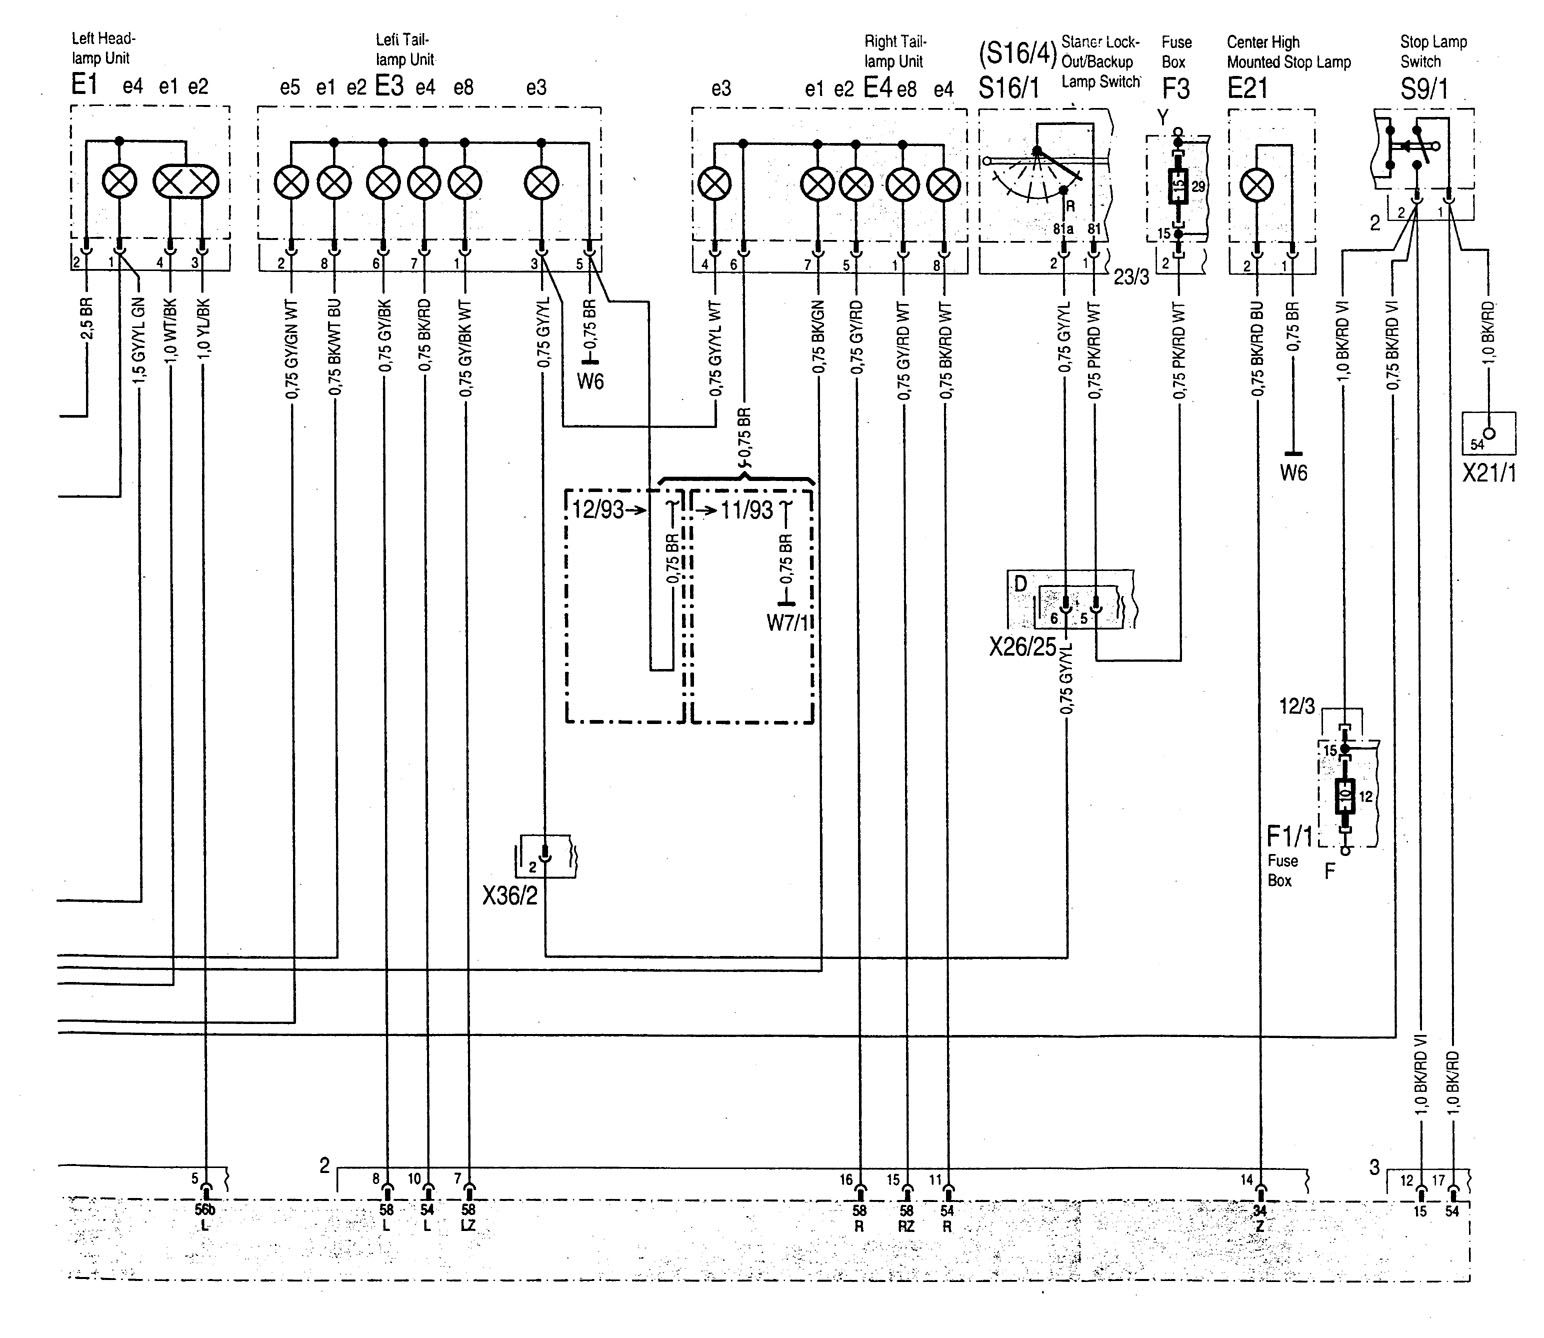 C 280 Mercedes Benz 1994 Diagram Search For Wiring Diagrams C220 C280 1997 2007 C230 Sport Amg 560sec